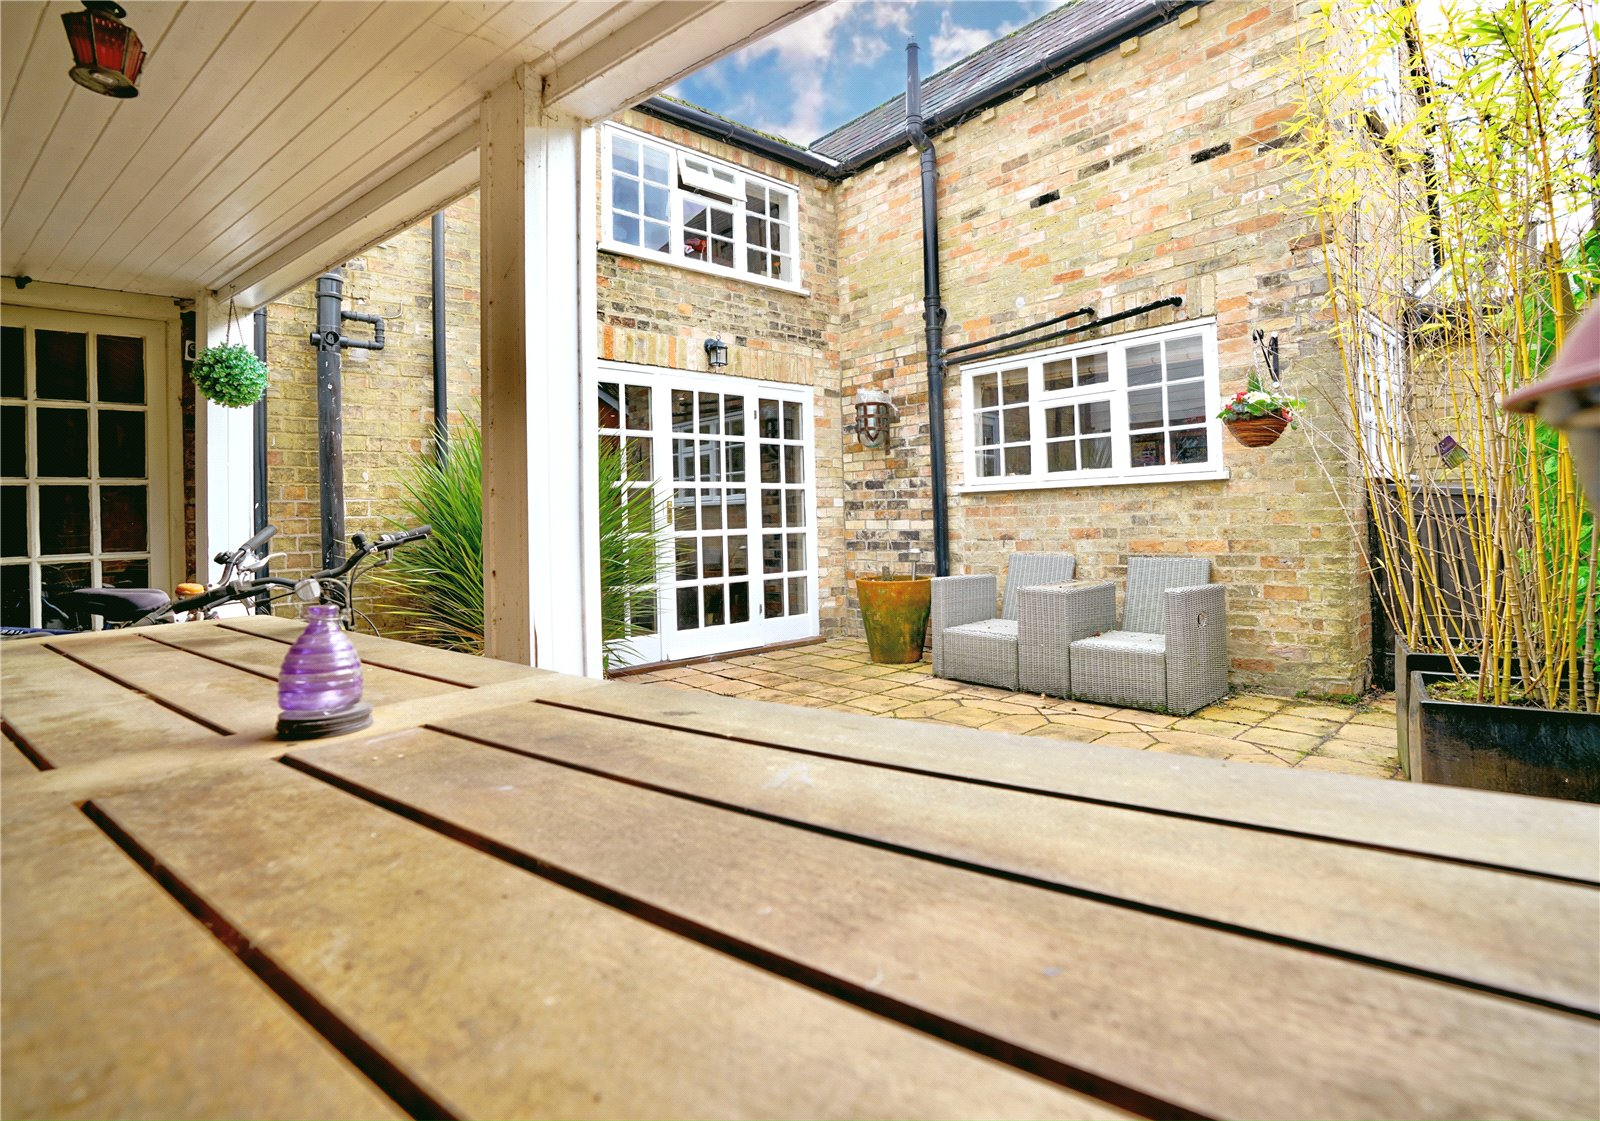 4 bed for sale in The Town, Great Staughton 8